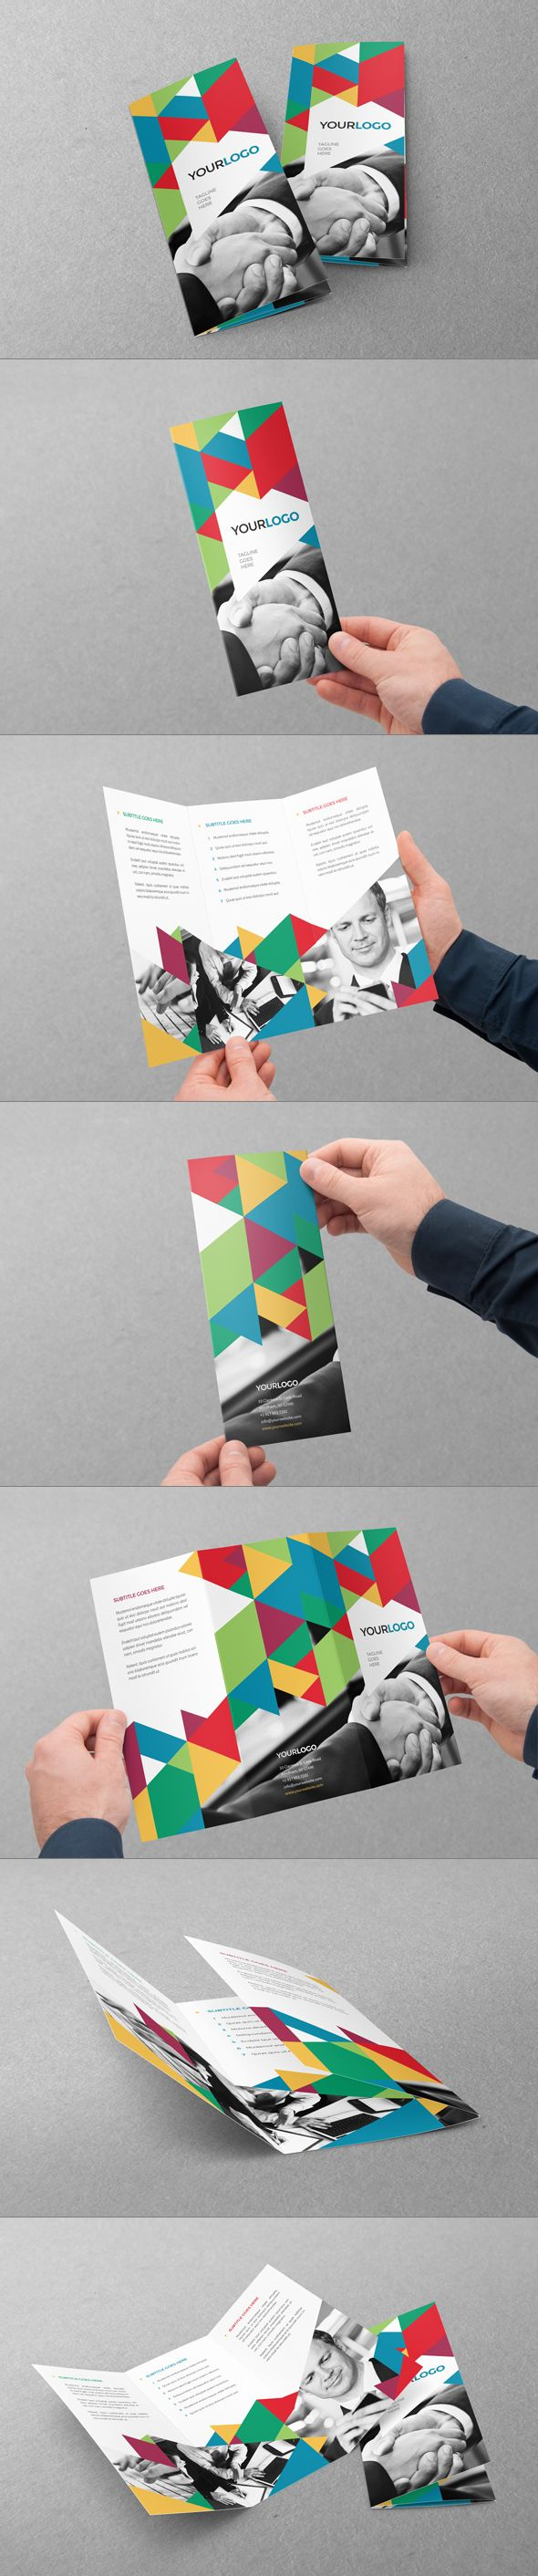 Colorful Business Trifold. Download here: http://graphicriver.net/item/colorful-business-trifold/7687440 #design #brochure #trifold